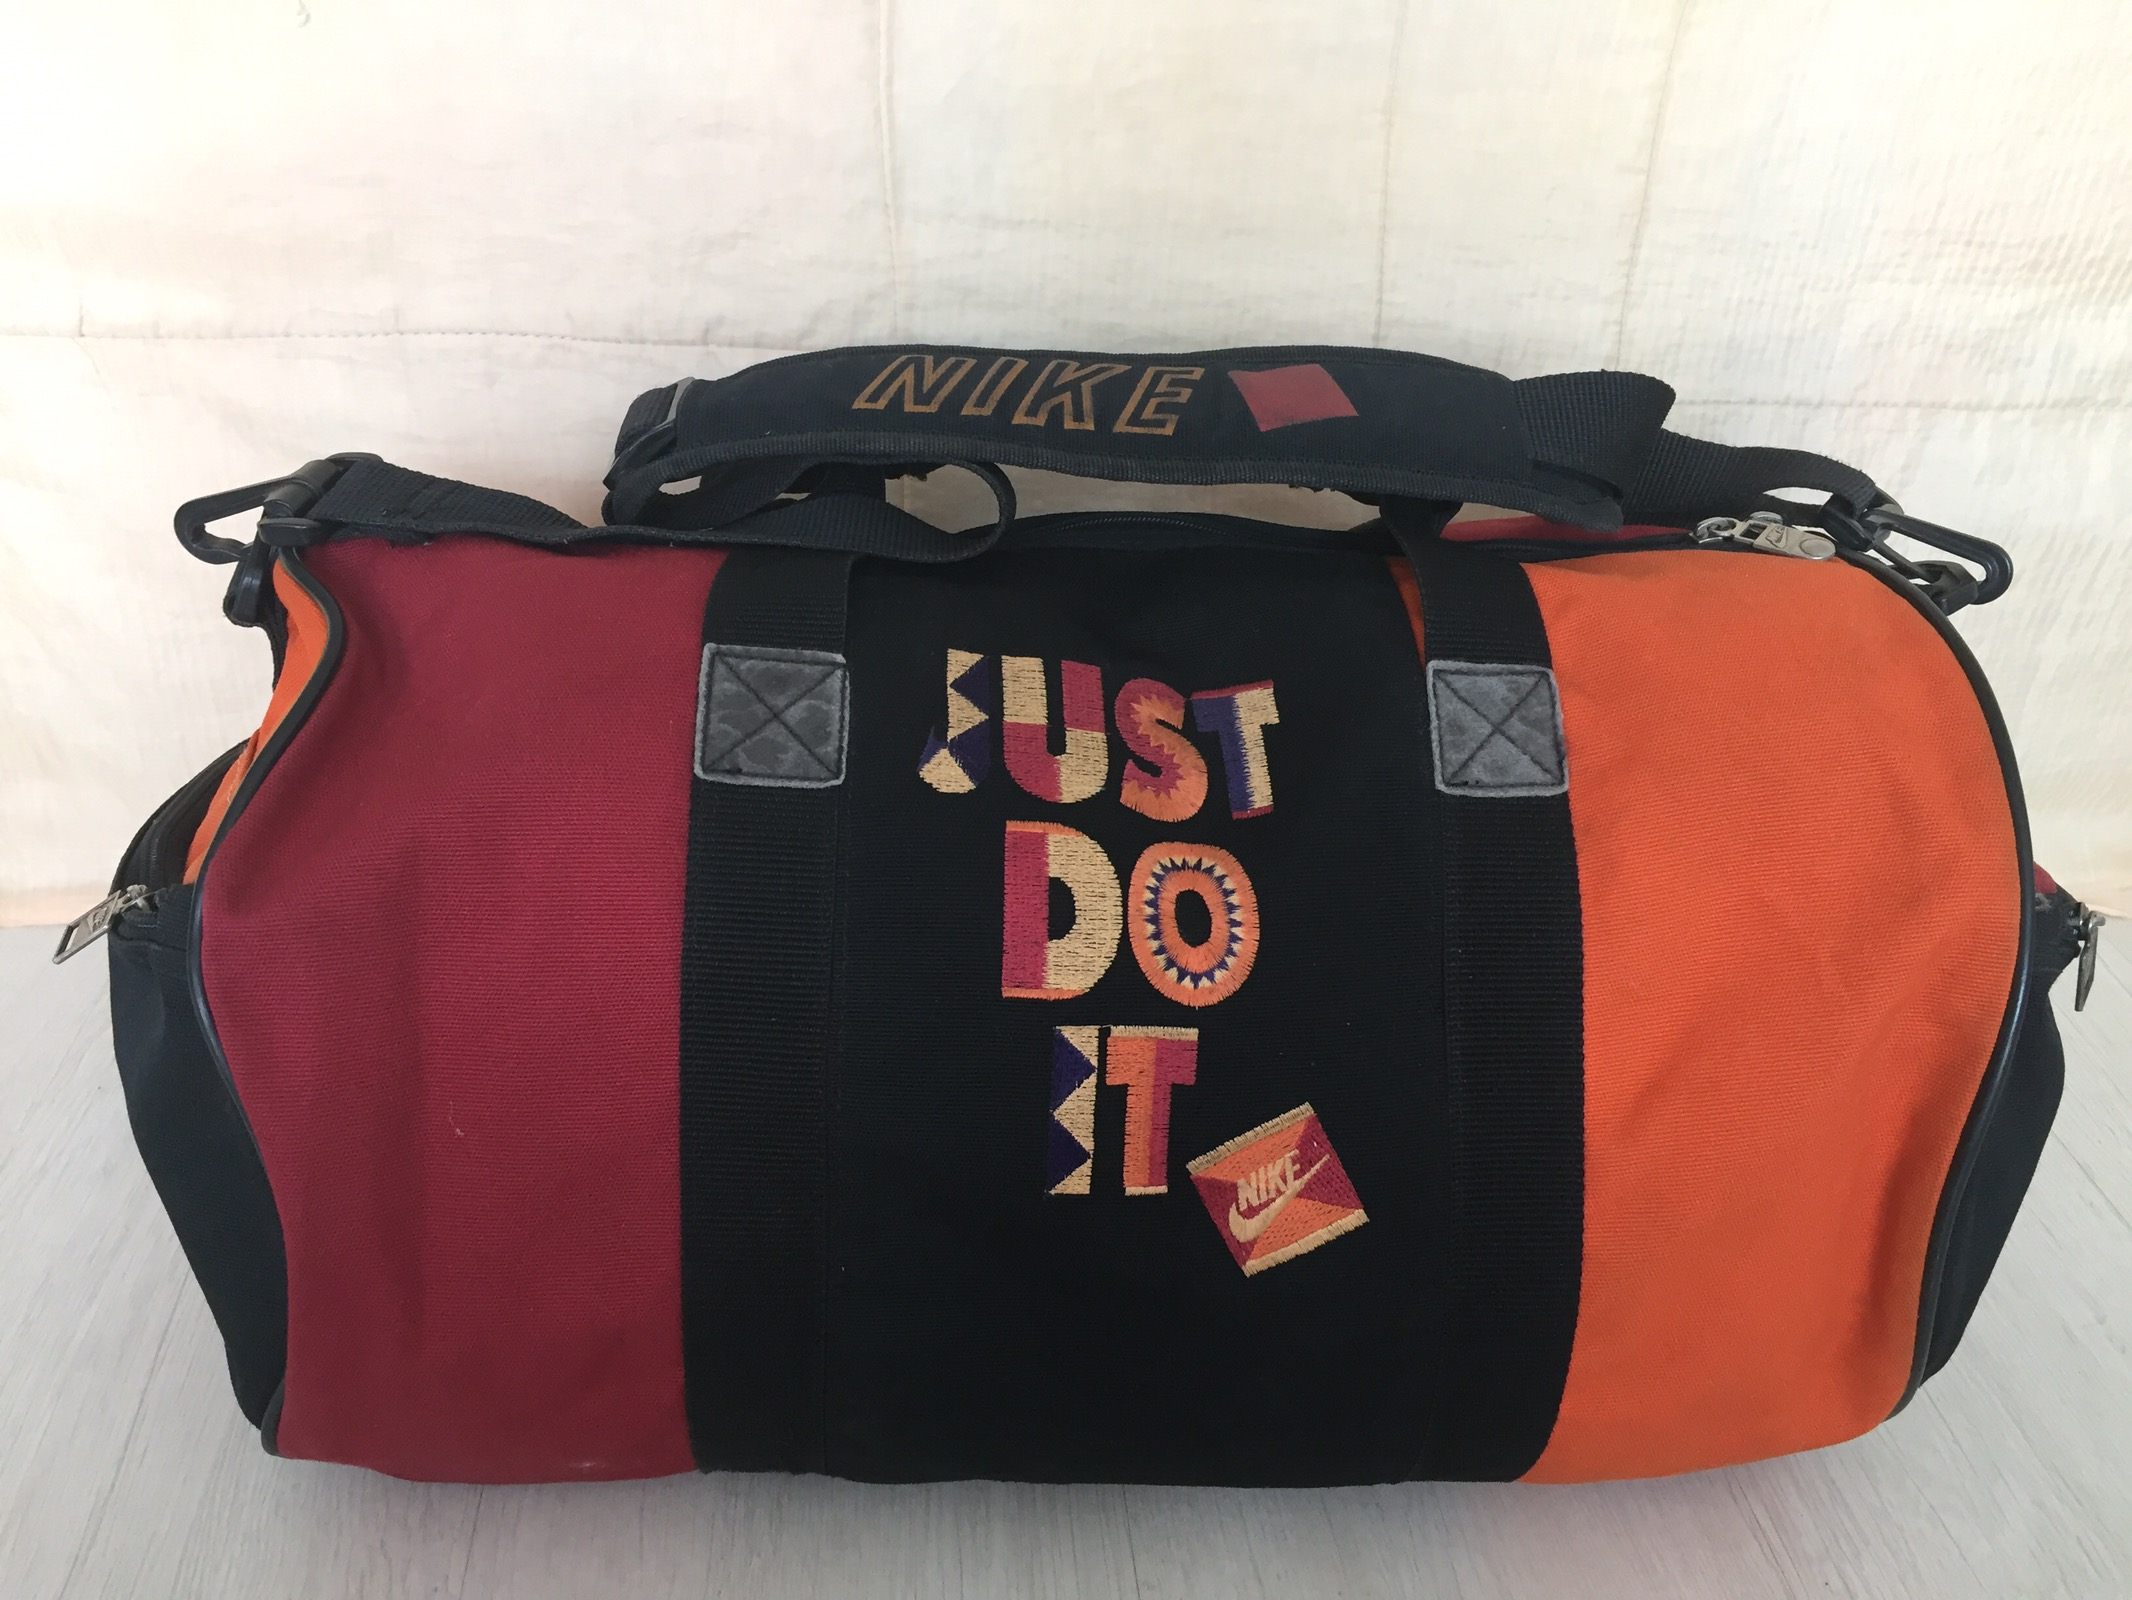 pago bloquear meteorito  Nike Vintage 90s Nike Jordan Just Do It Gym Bag | Grailed